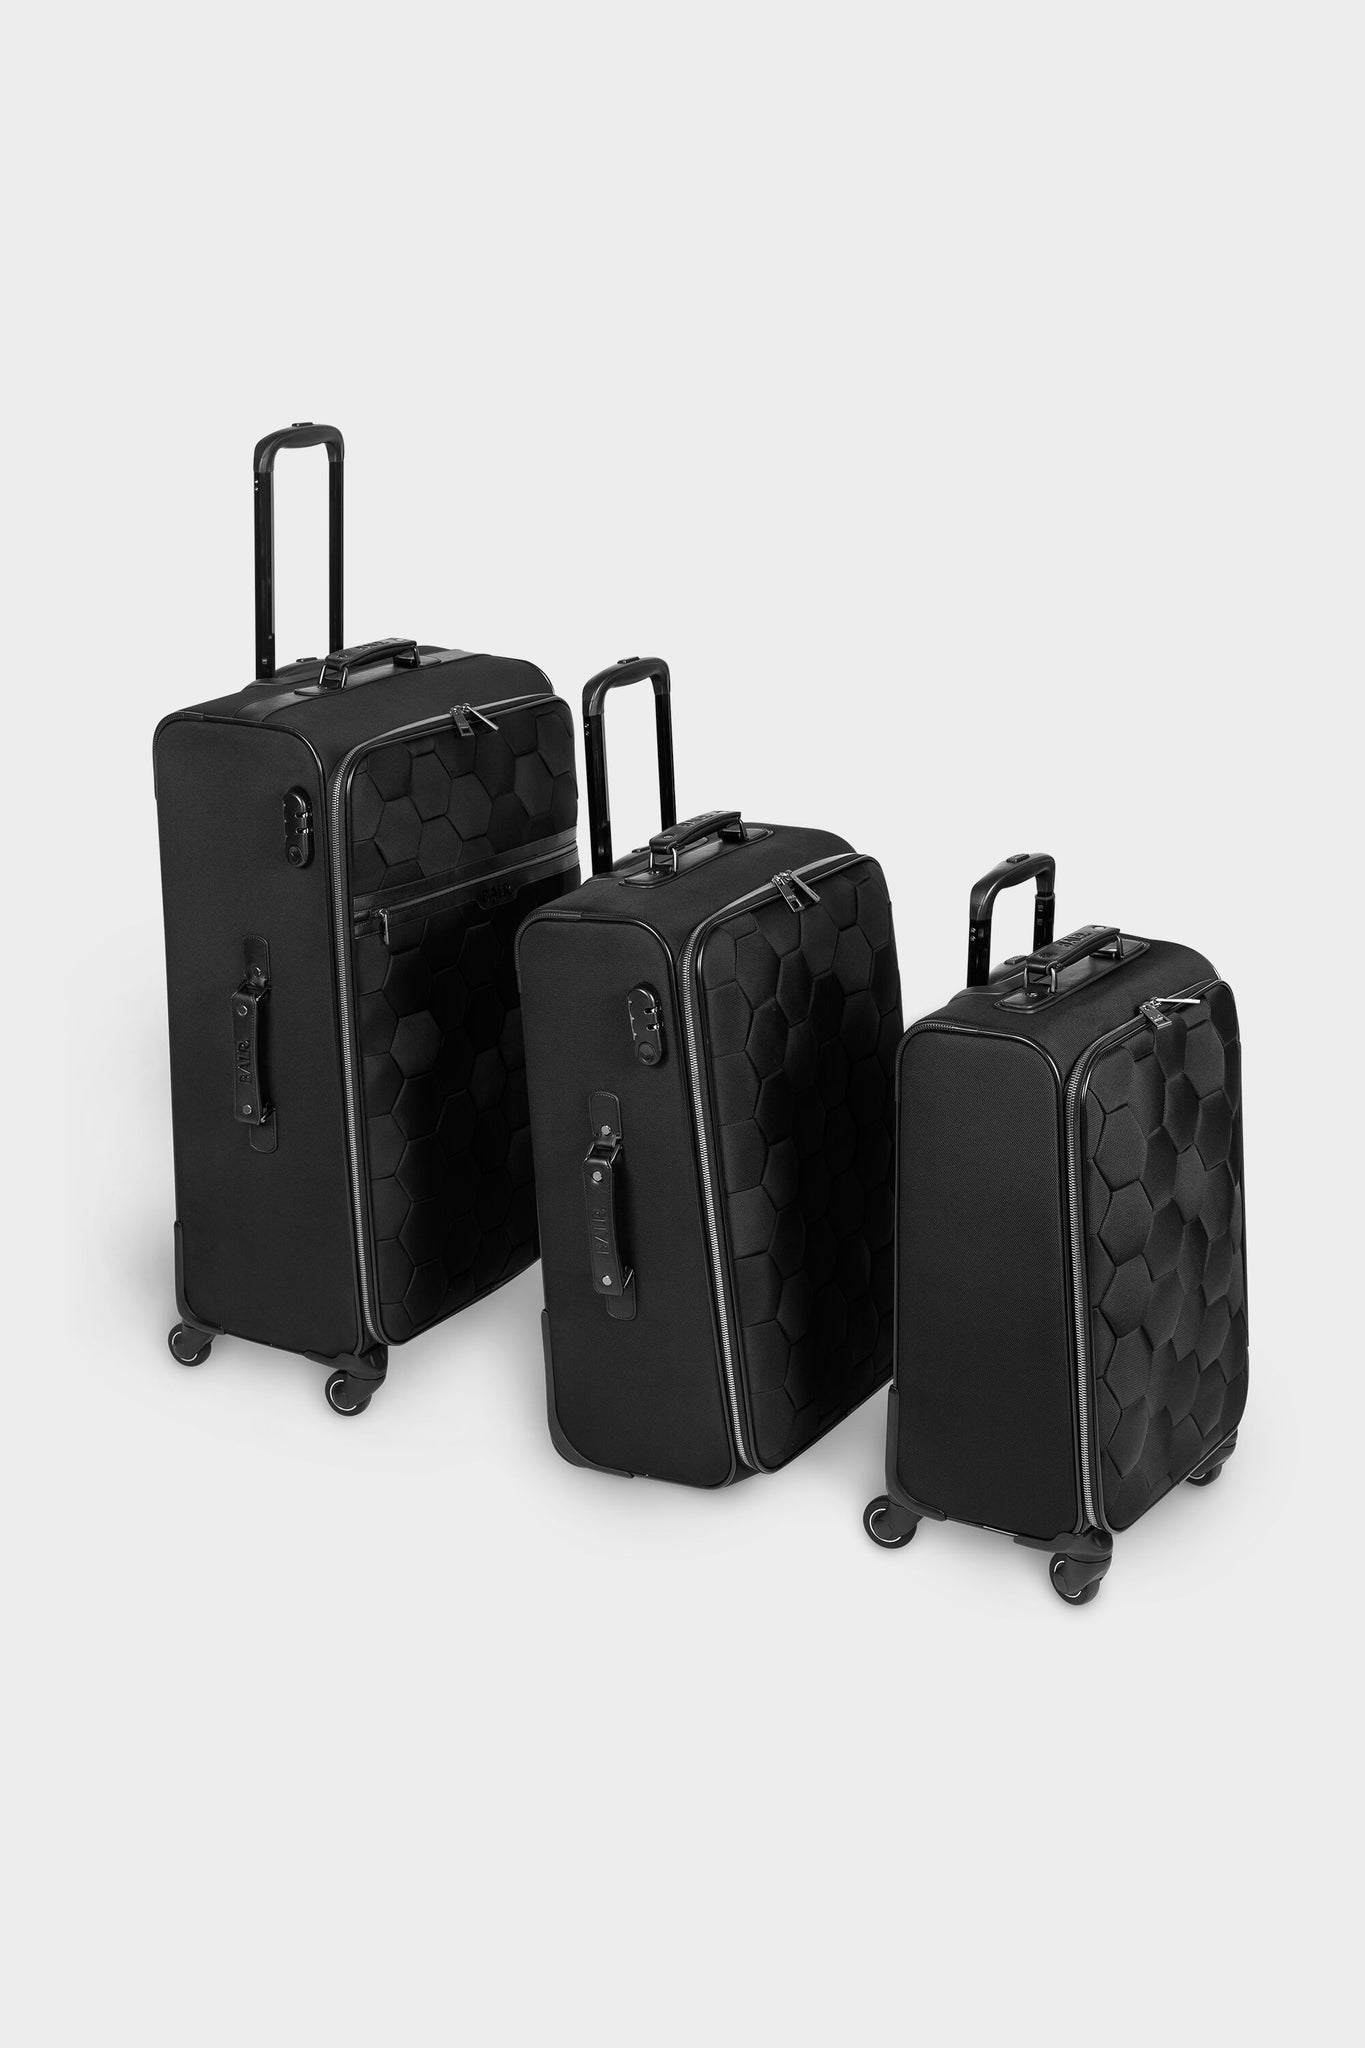 The Ultimate Travel Set